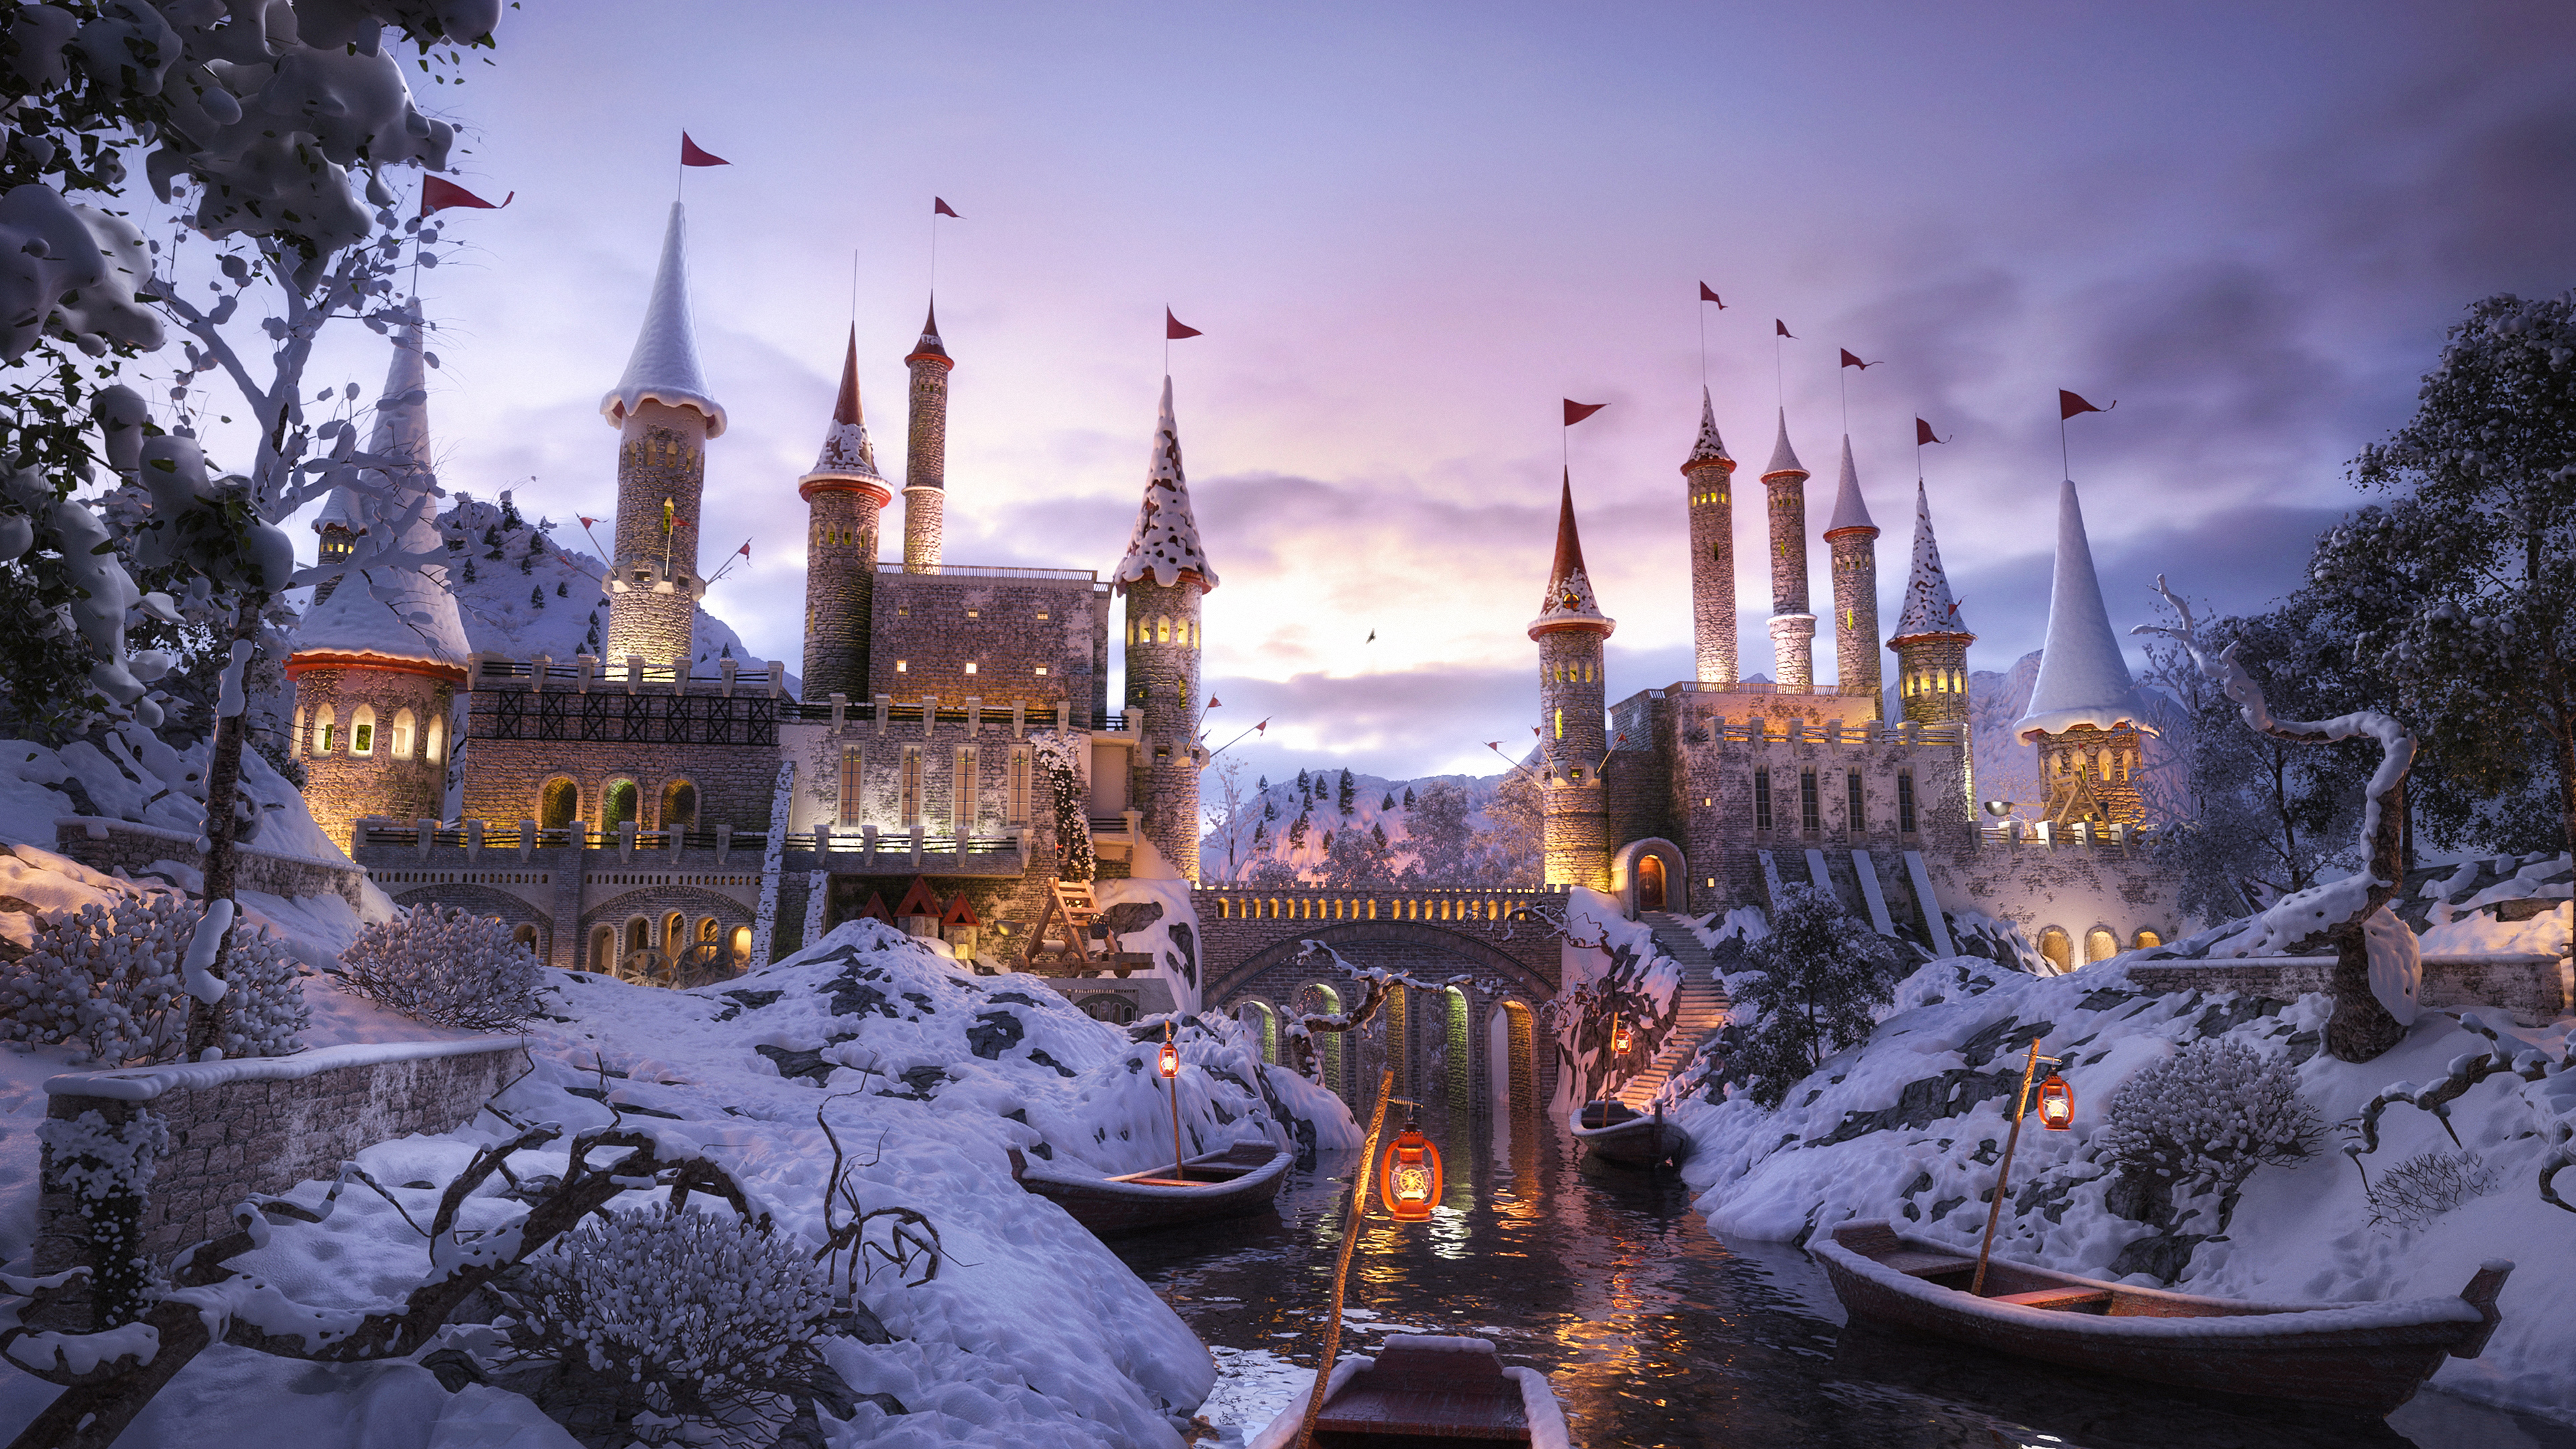 A Castle In Snow 4k Hd Artist 4k Wallpapers Images